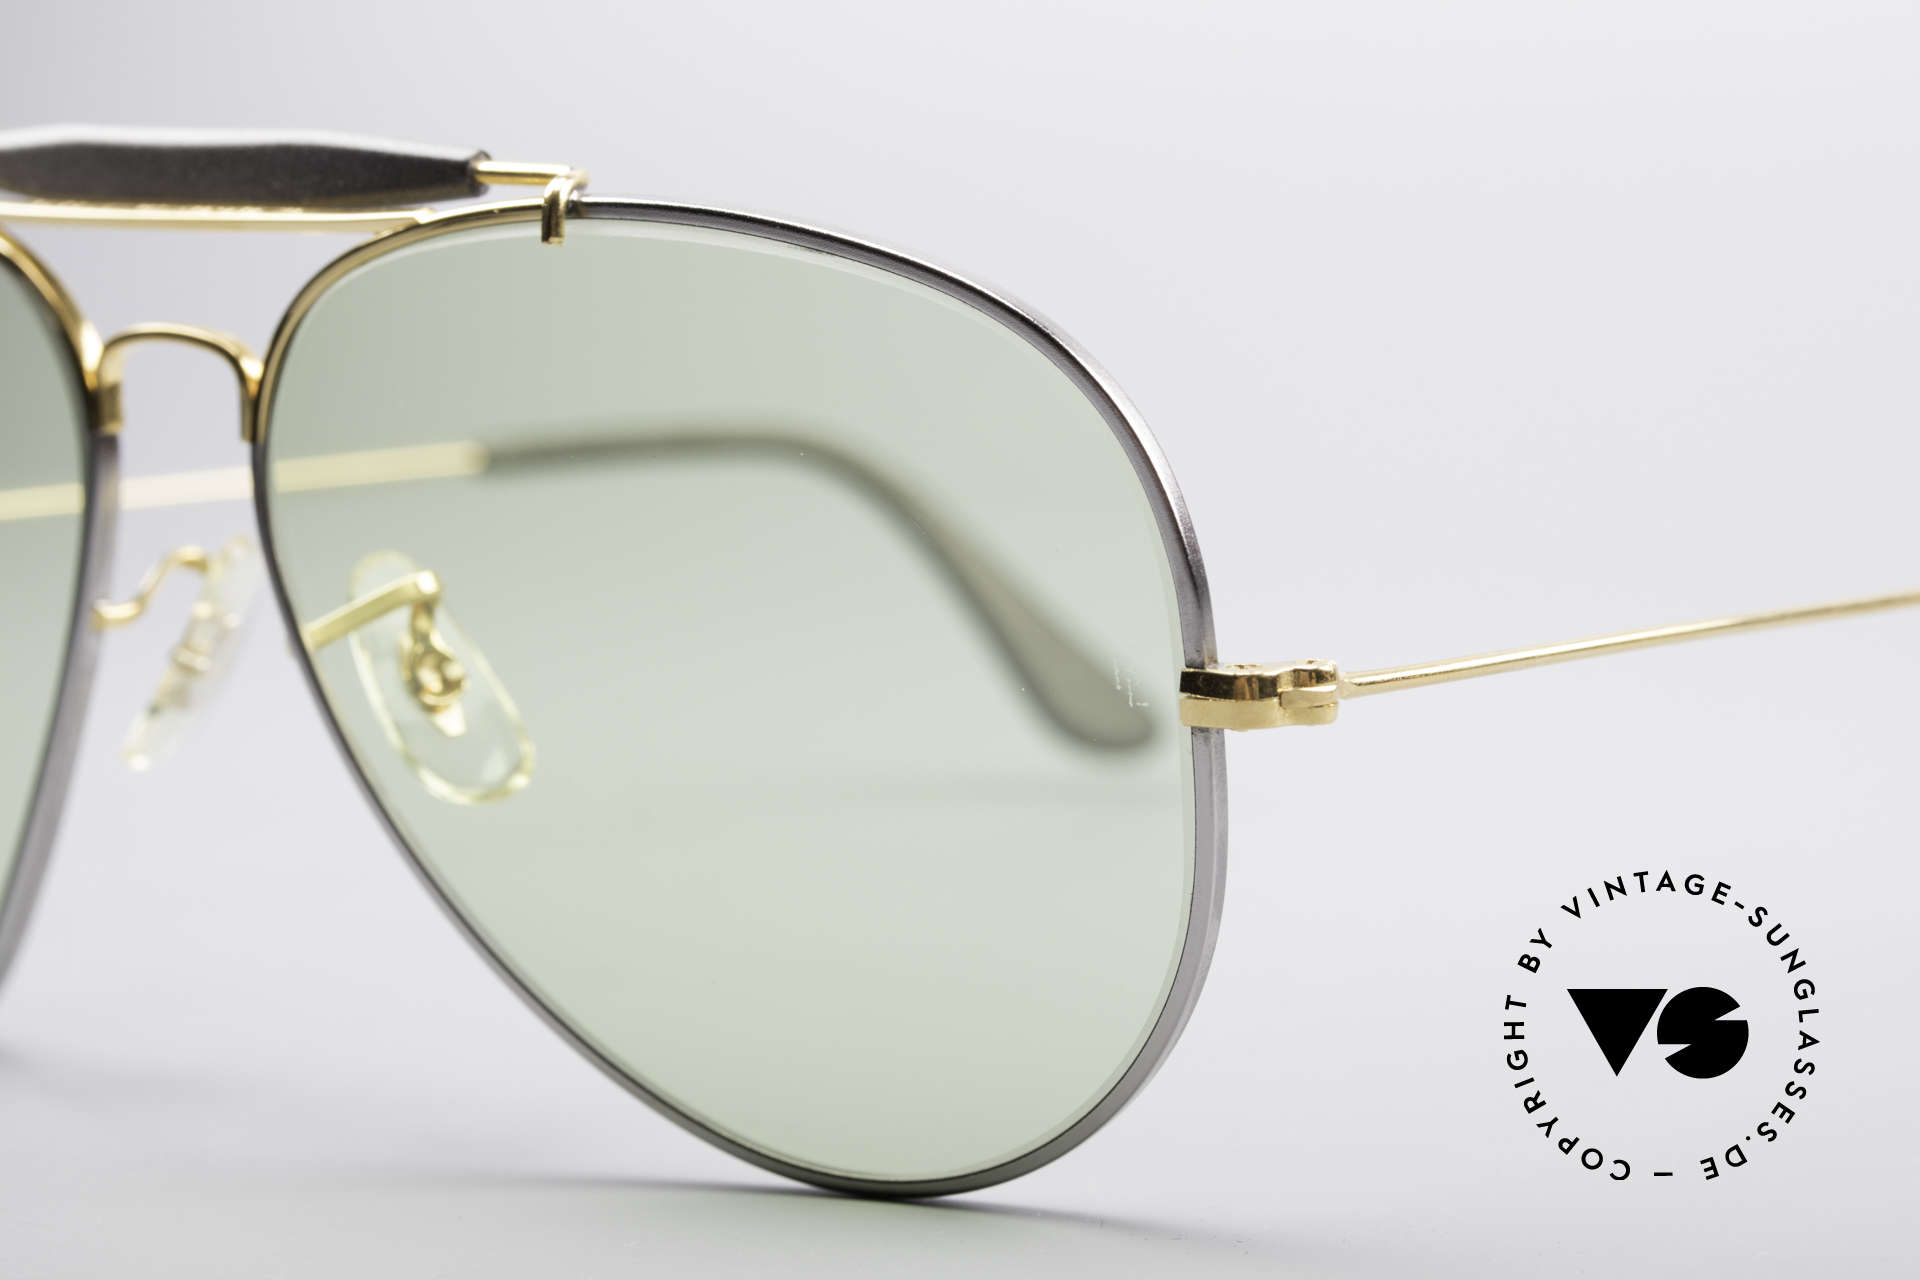 Ray Ban Outdoorsman II Precious Metals Changeable, made in the 1970's & 80's by Bausch&Lomb, USA, Made for Men